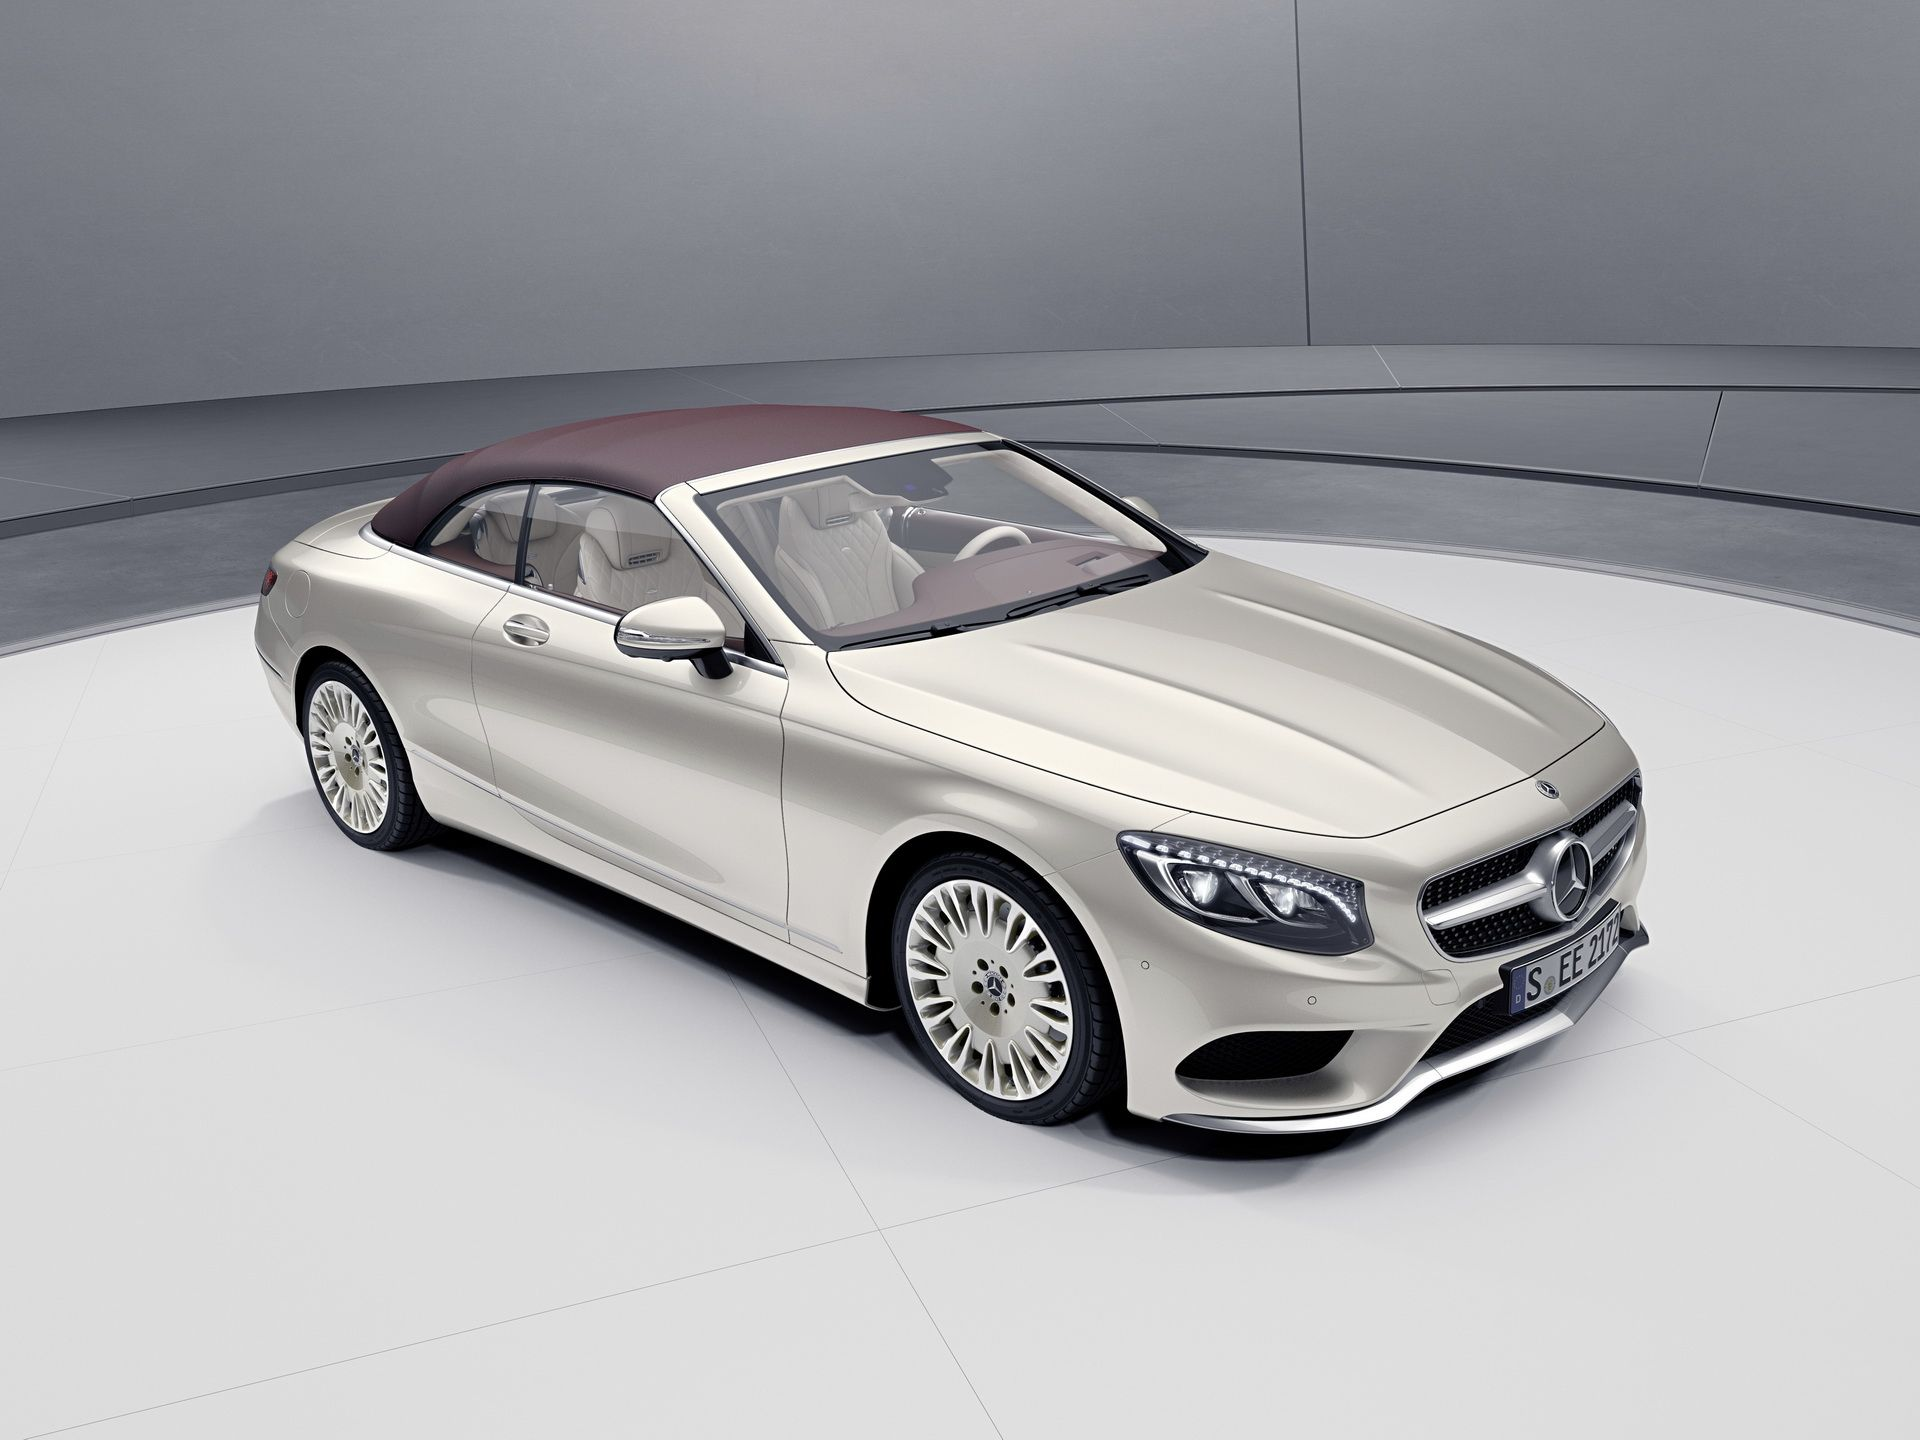 2018 Mercedes Benz S Class Coupe And Cabrio Exclusive Editions Arrive With More Gear Carscoops Mercedes Benz Benz S Class Benz